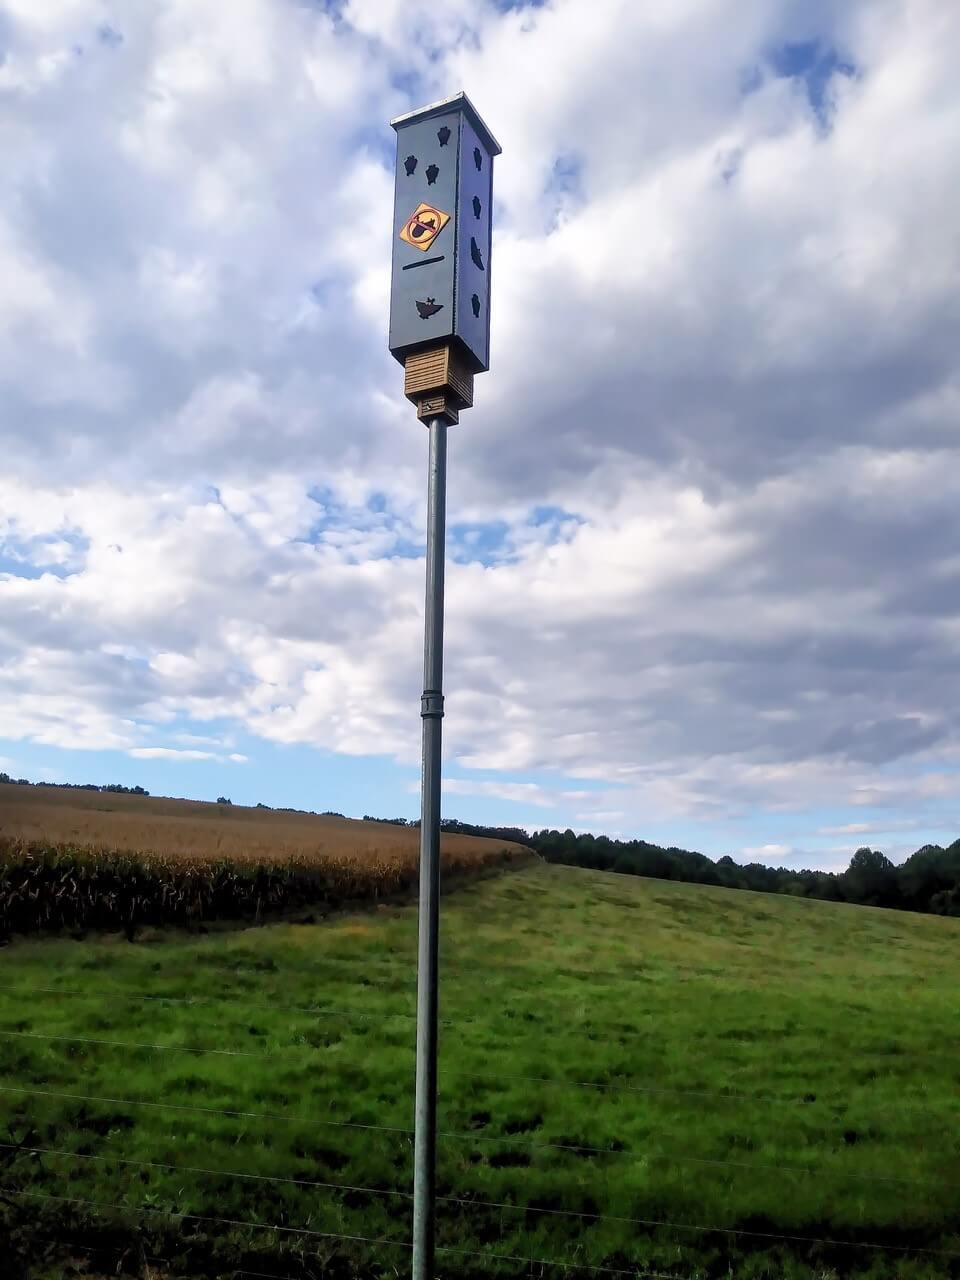 2 chamber large rocket bat box standing upright in a green field